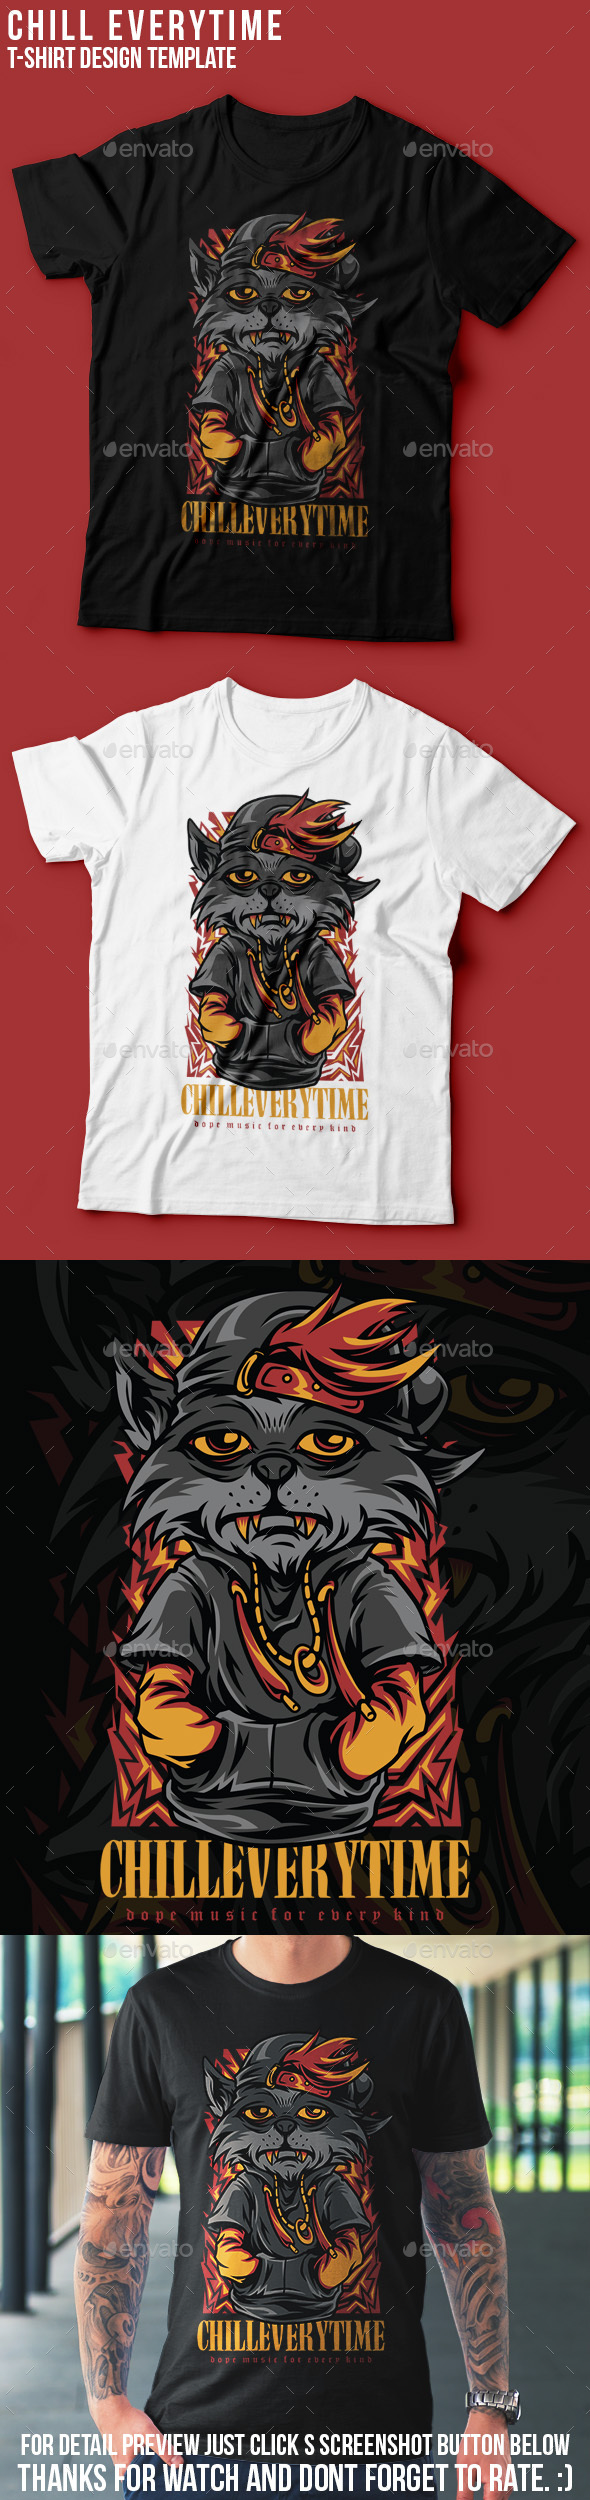 Chill Everytime T-Shirt Design